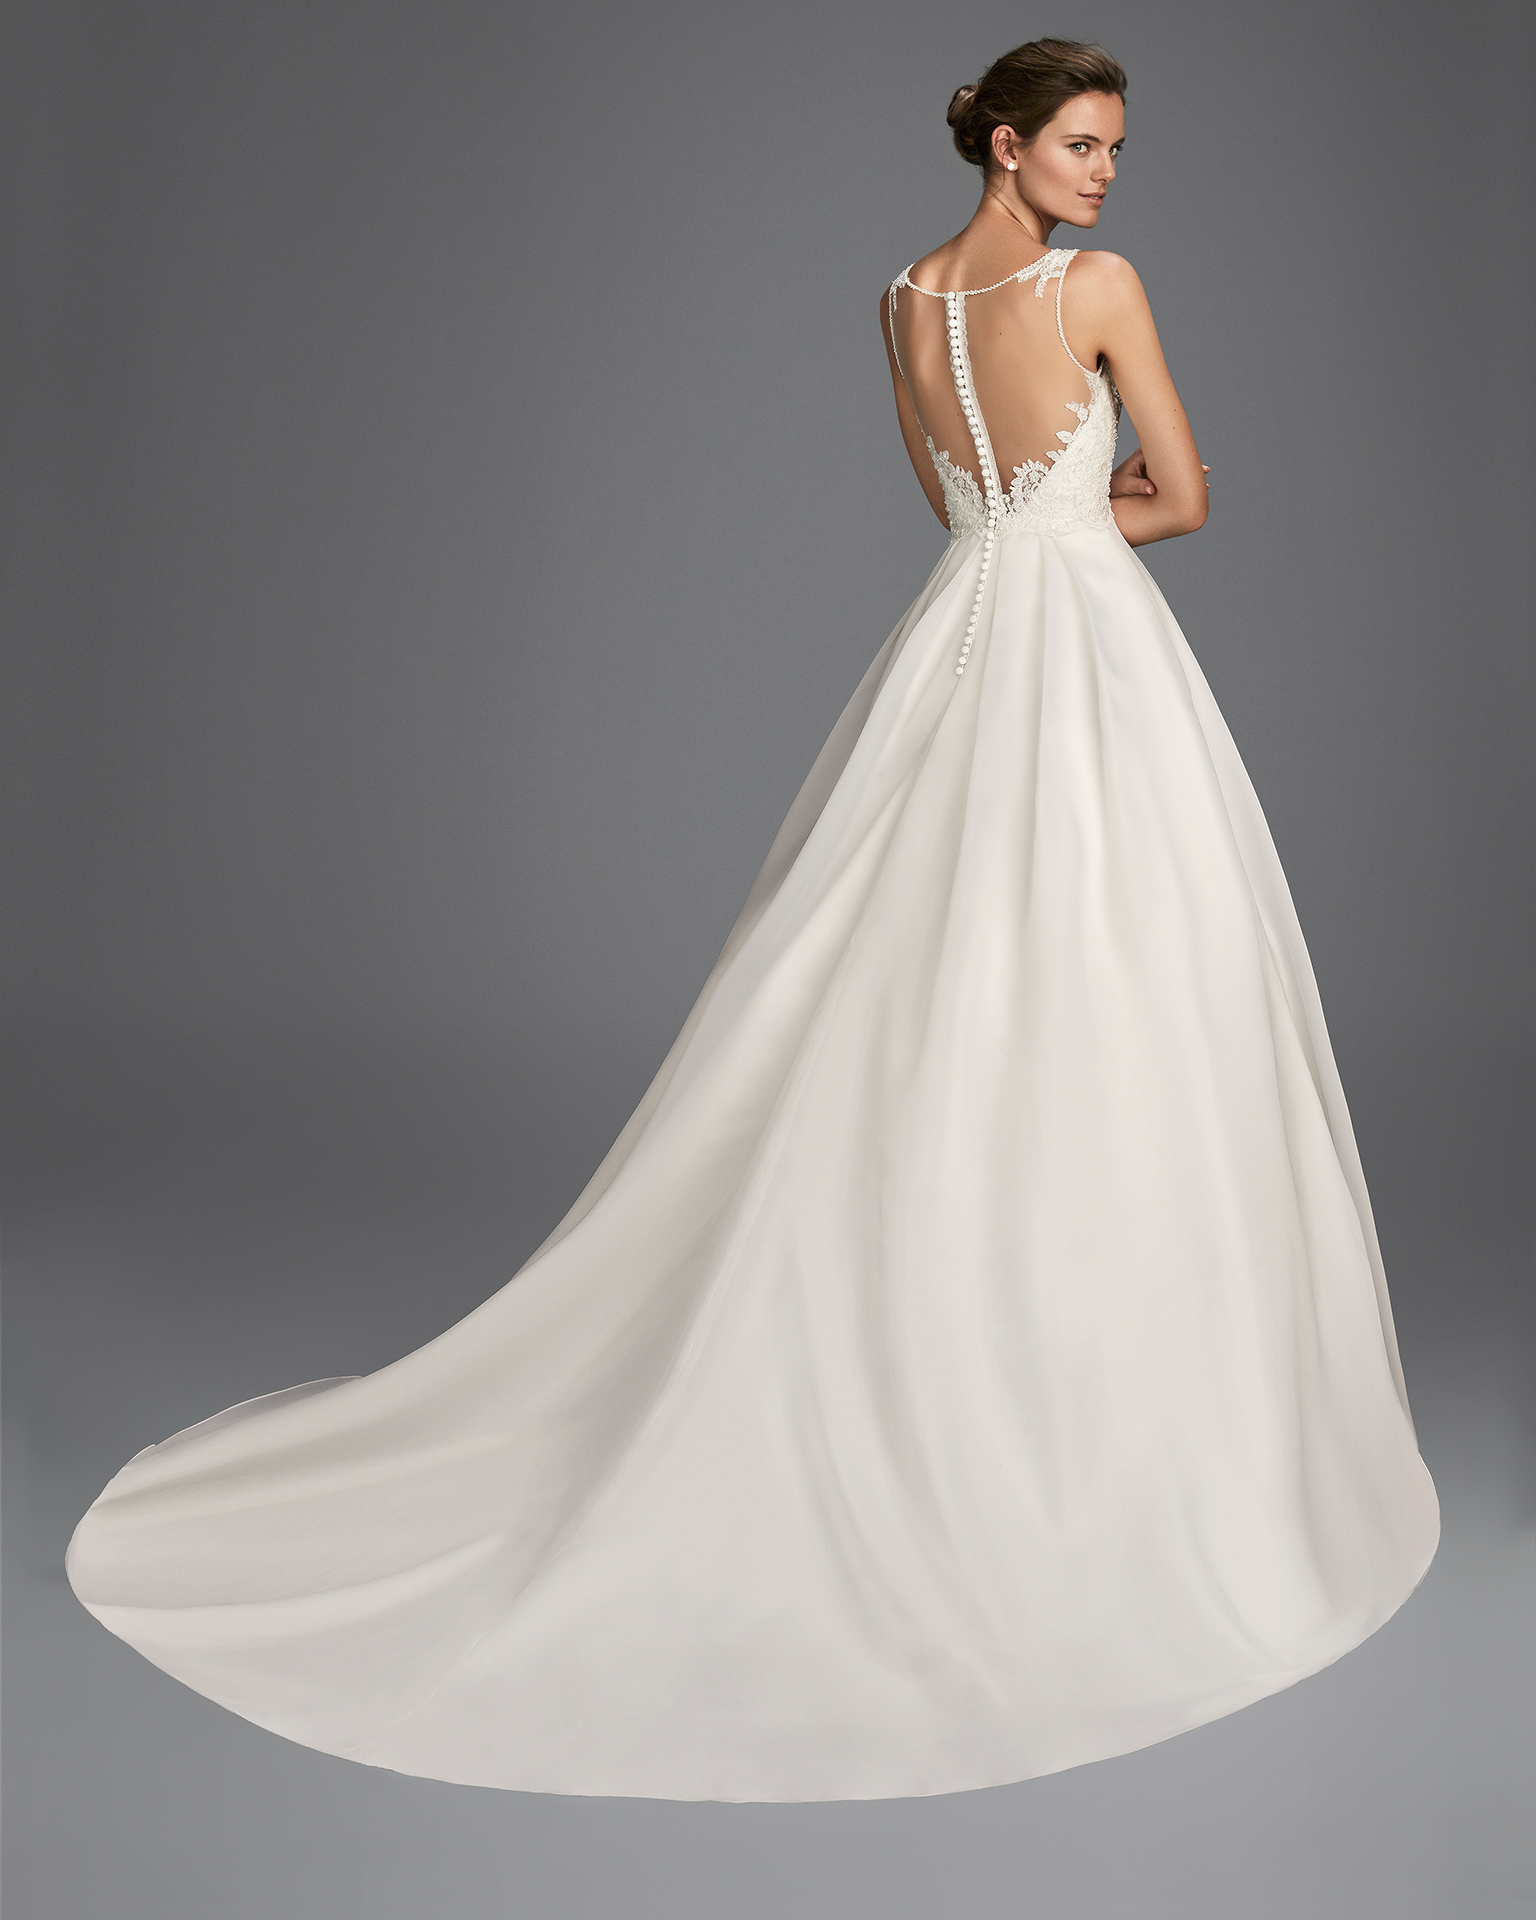 Princess-style beaded lace and organza wedding dress with V-neckline and low back.